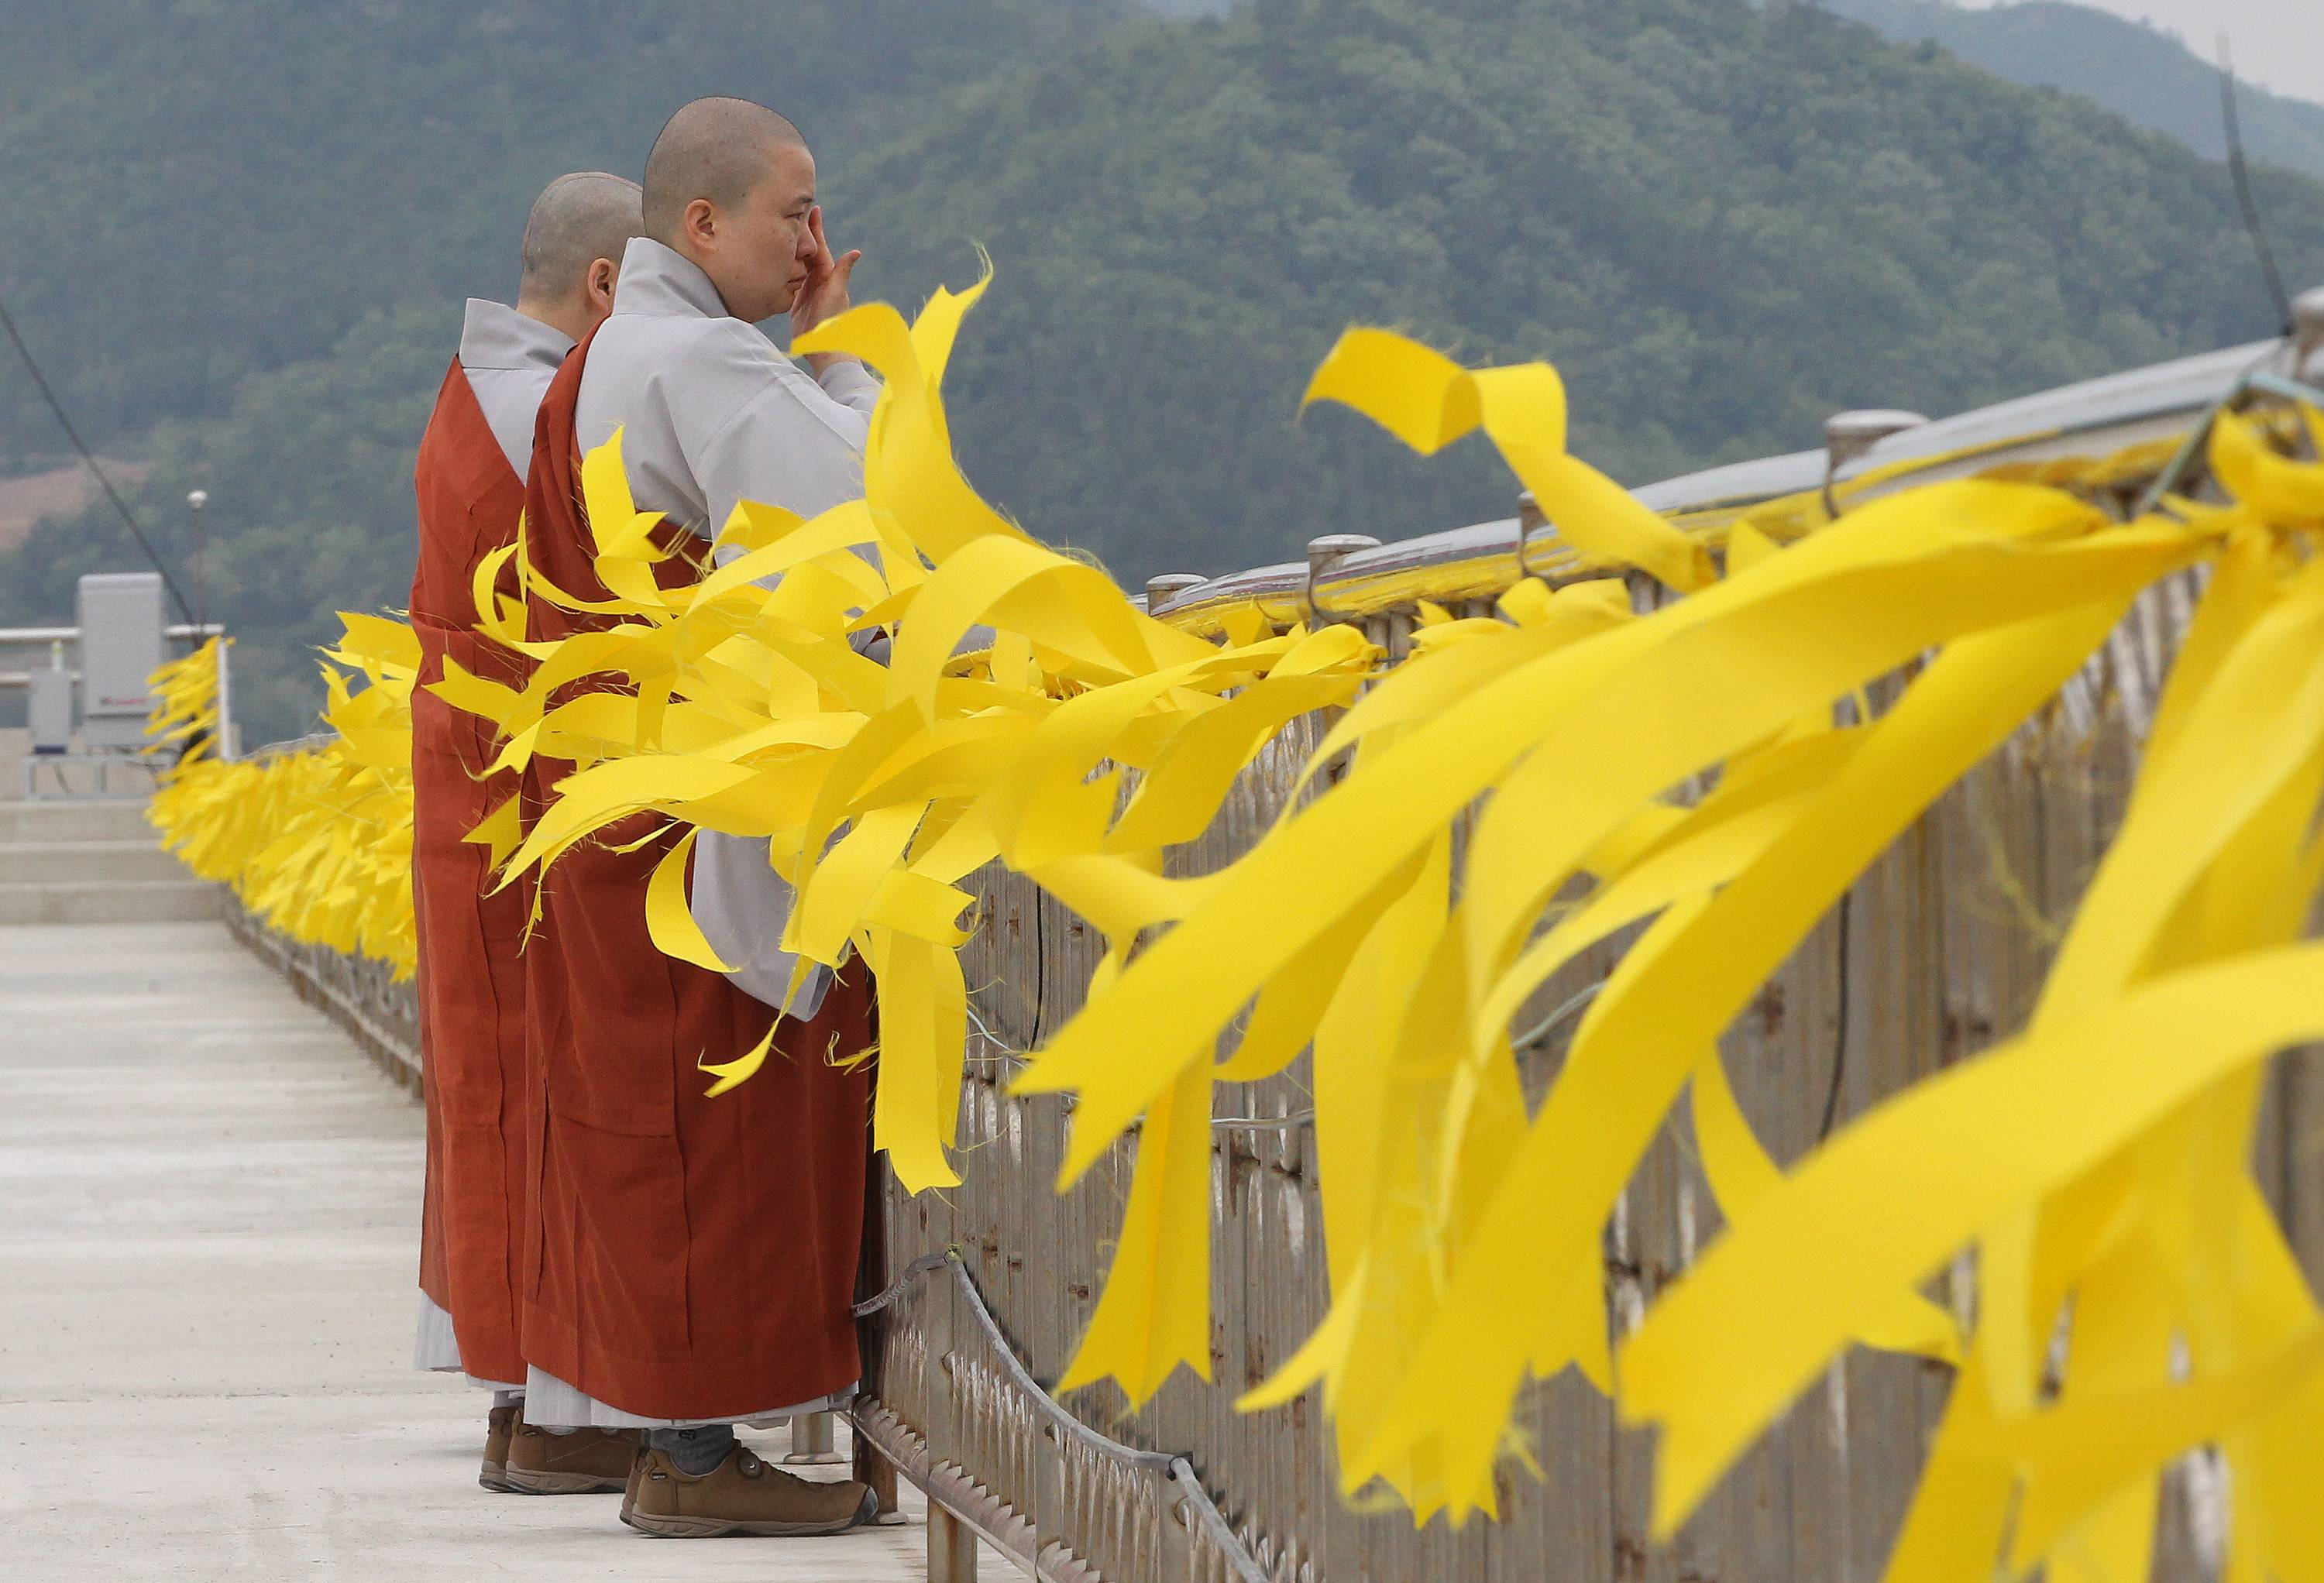 A Buddhist nun wipes her tears after attending a service as yellow ribbons are displayed as a sign of hope for the safe return of missing passengers of the sunken ferry Sewol at a port in Jindo, South Korea, Saturday, April 26, 2014. As visiting U.S. President Barack Obama offered South Koreans his condolences Friday for the ferry disaster in the water off the southern coast, the South Korean government conceded that some bodies have been misidentified and announced changes to prevent such mistakes from happening again.